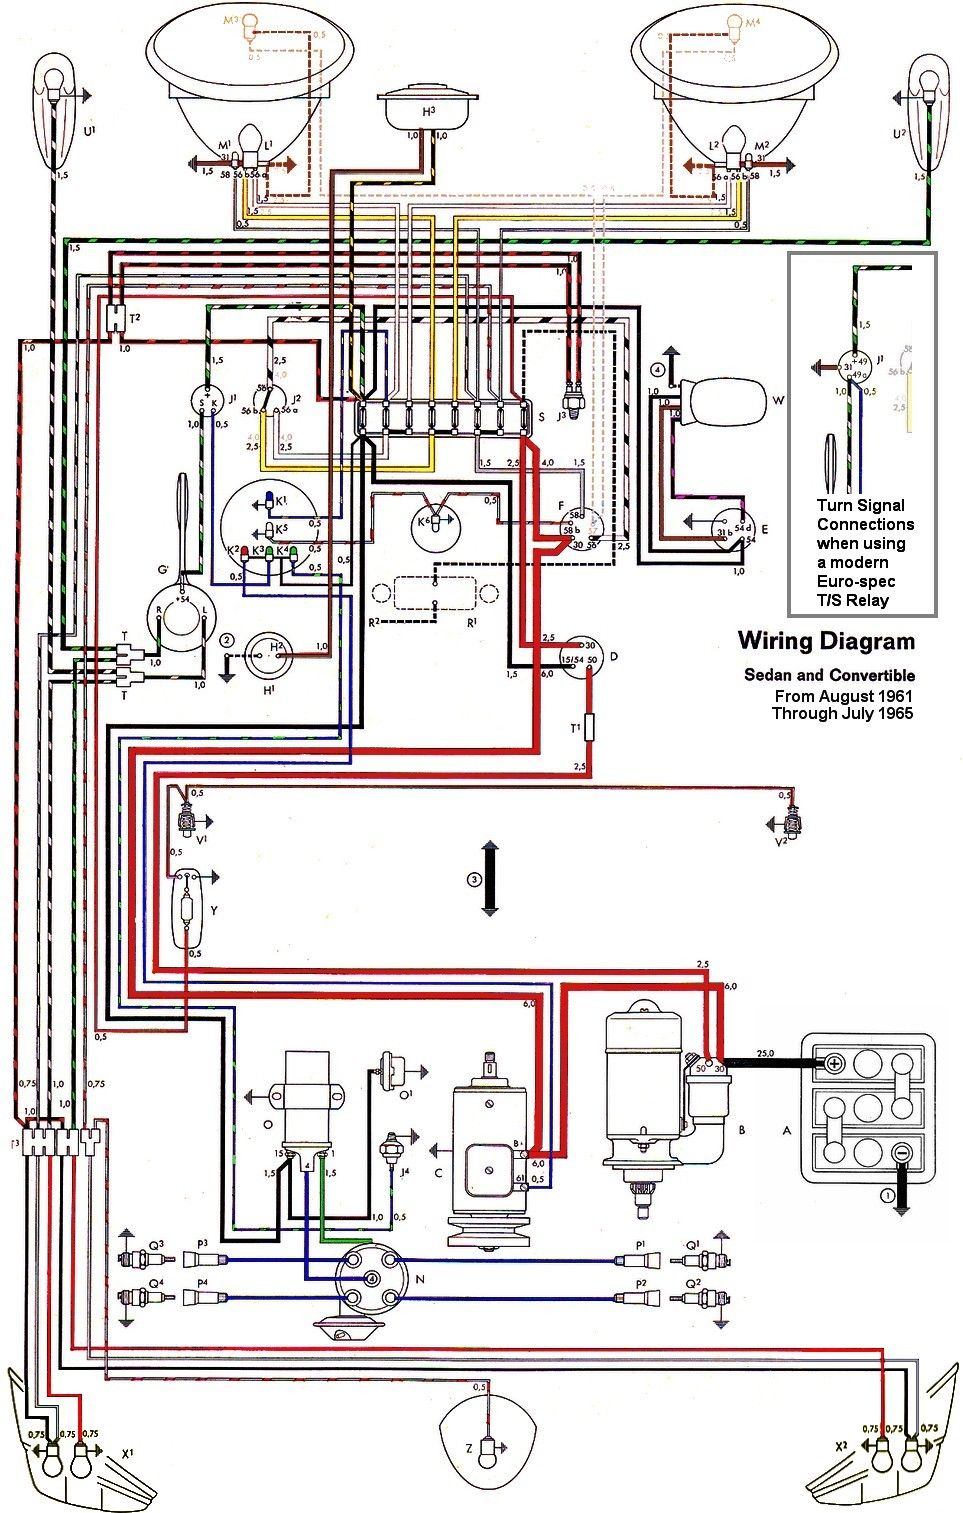 2235472c26e9b61112a110100d6ddea3 wiring diagram vw beetle sedan and convertible 1961 1965 vw vw engine wiring diagram at nearapp.co